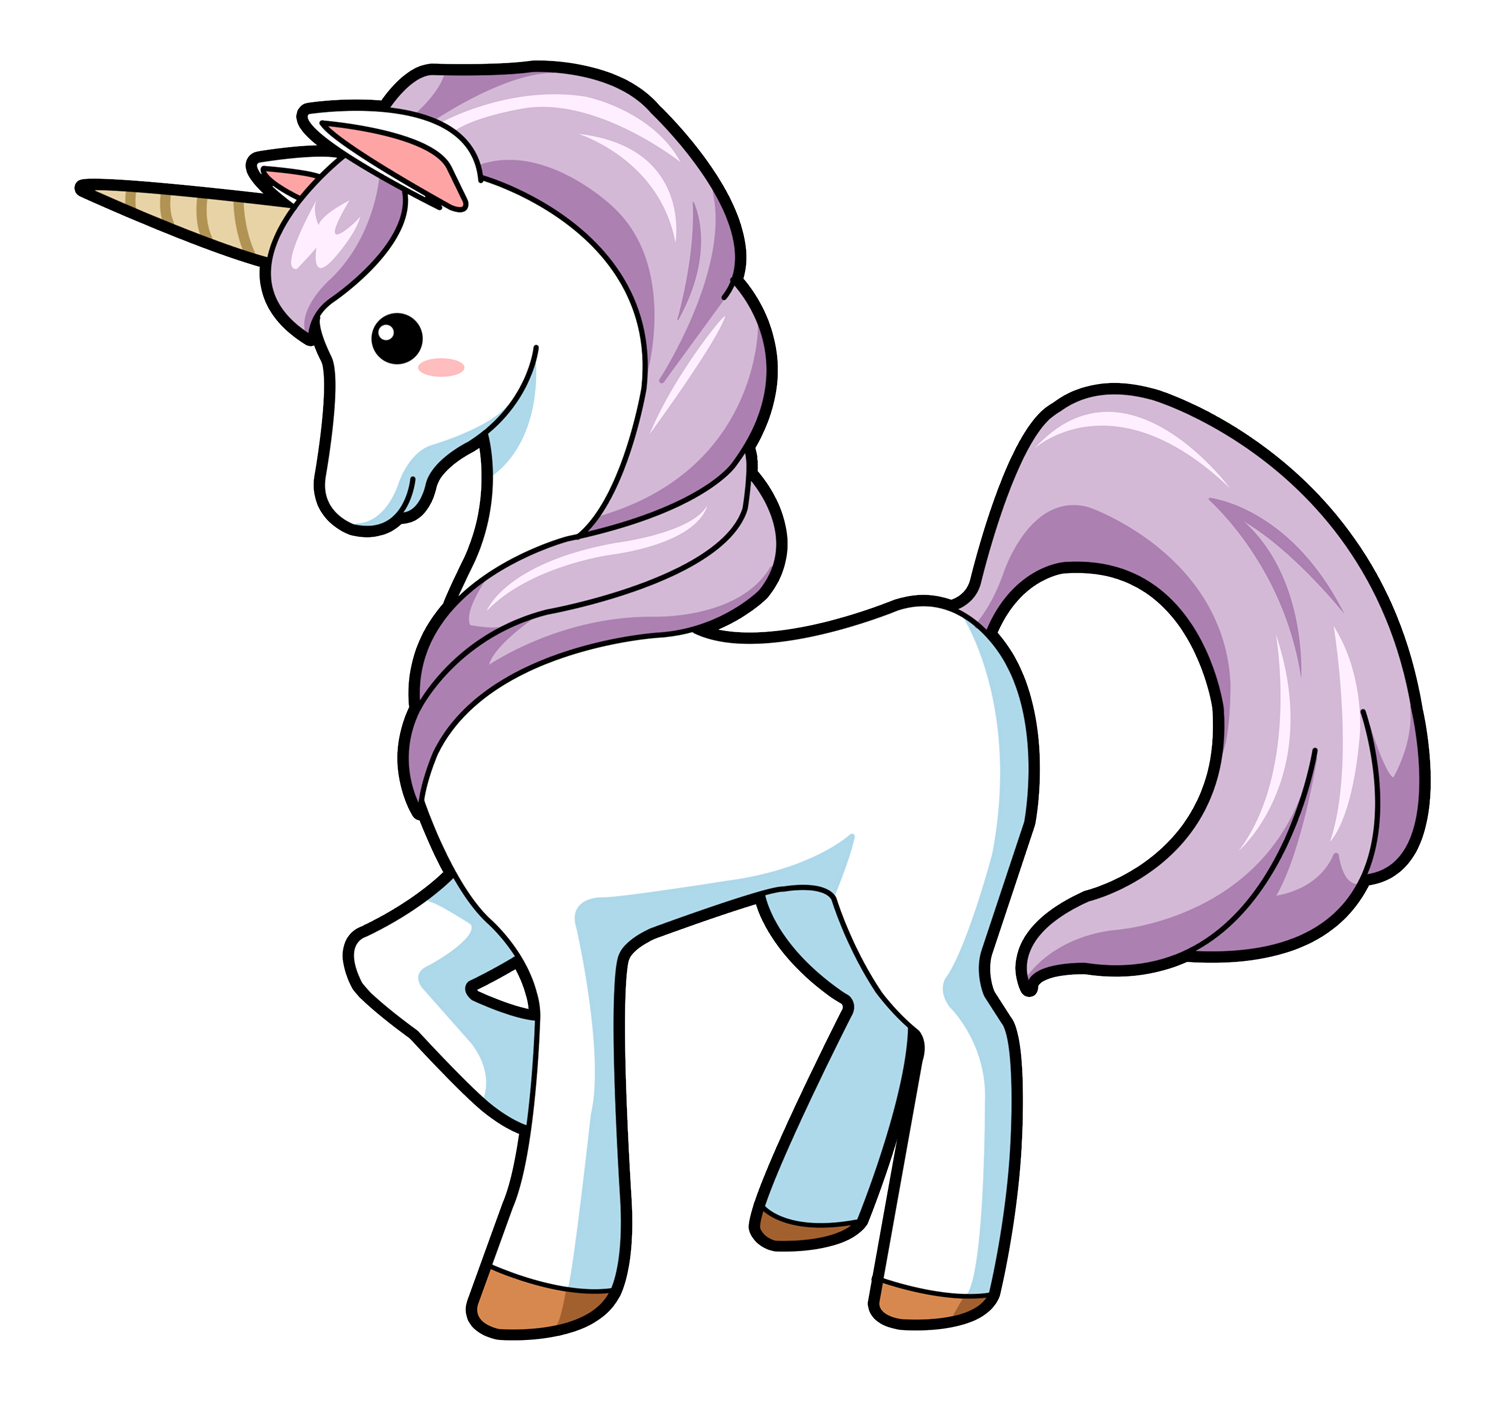 Free To Use & Public Domain Unicorn Clip Art - 1500x1414 ...